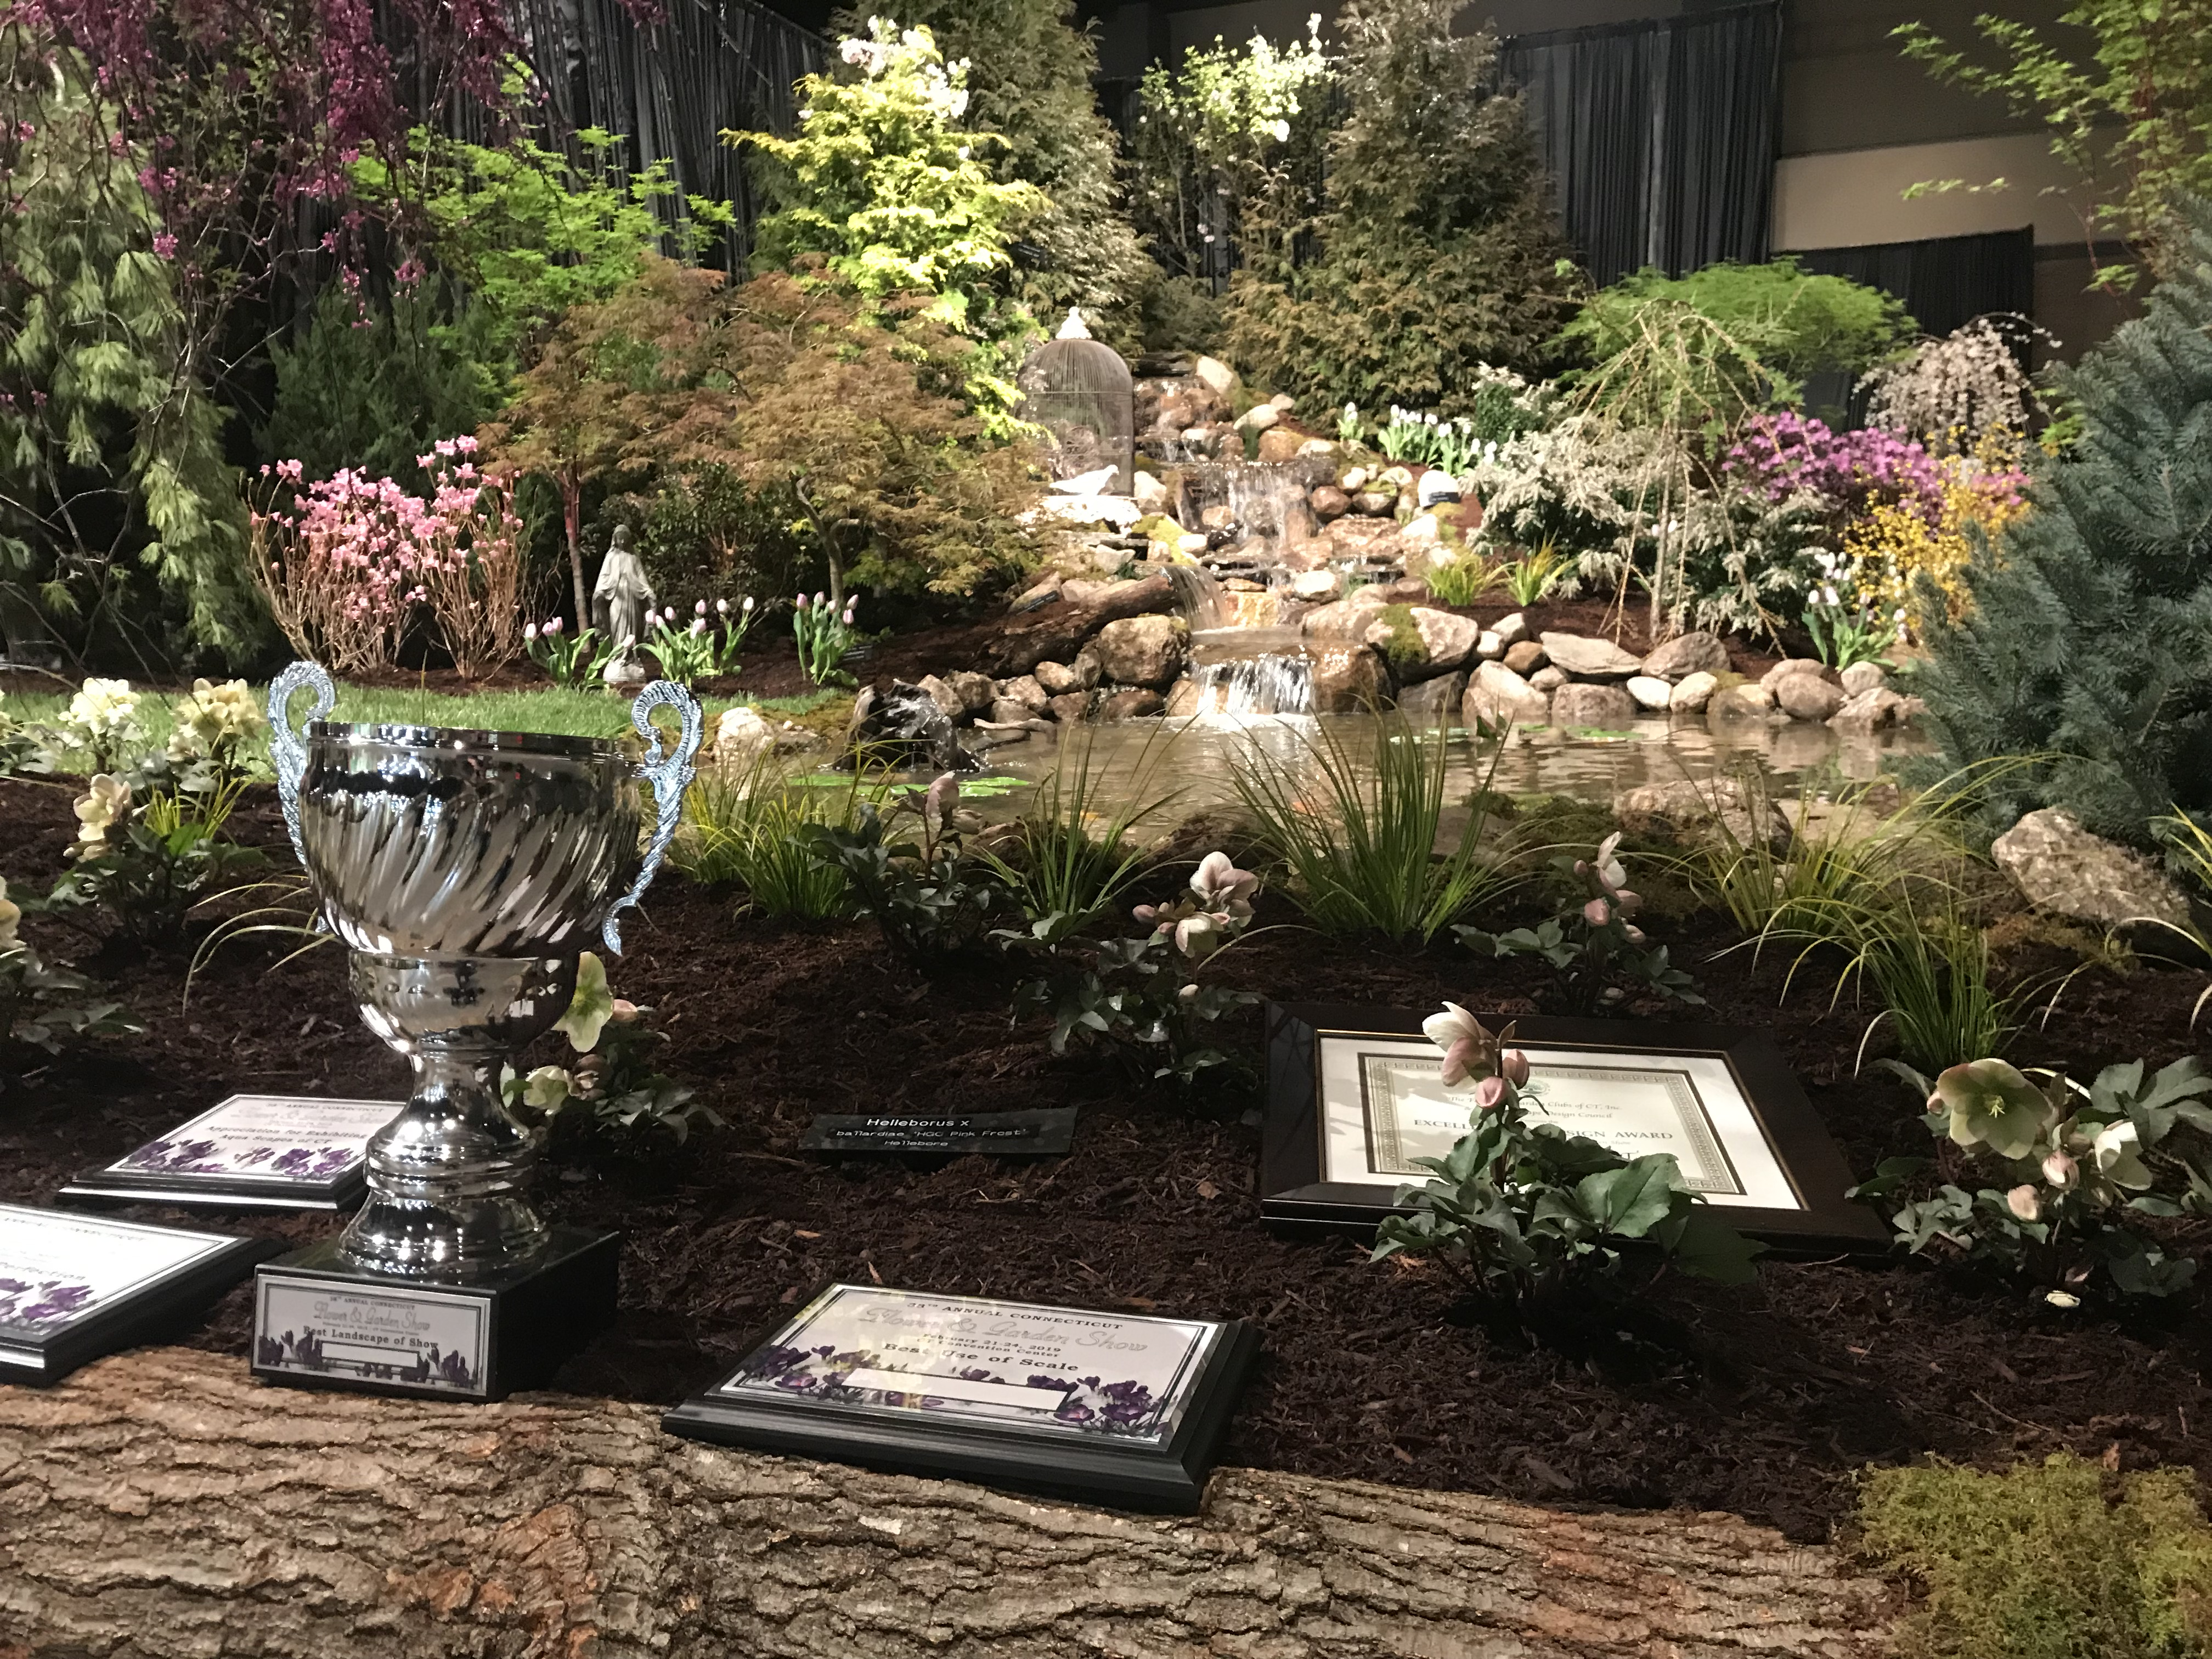 2019 Flower Show Results